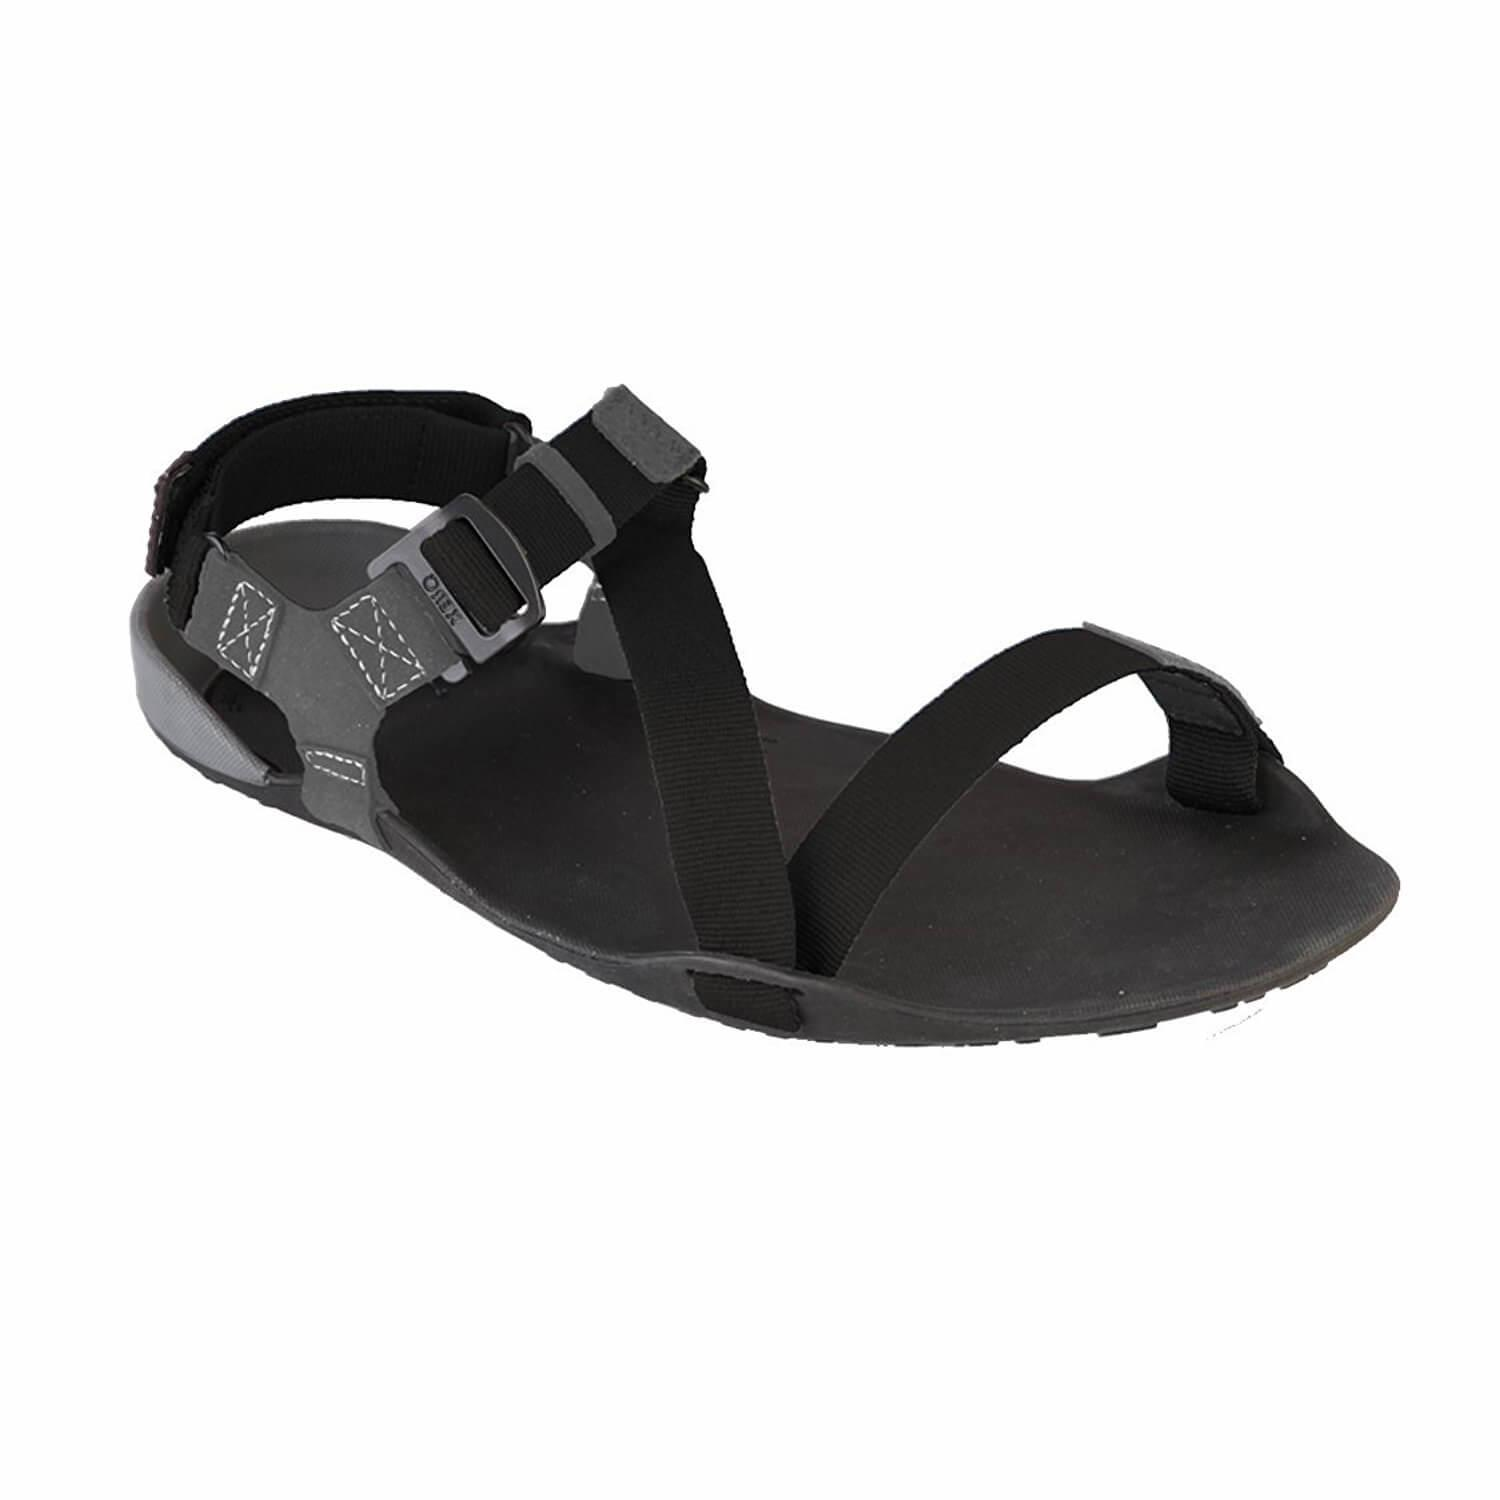 6f1c4a663c0e0 Best Running Sandals Reviewed in 2019